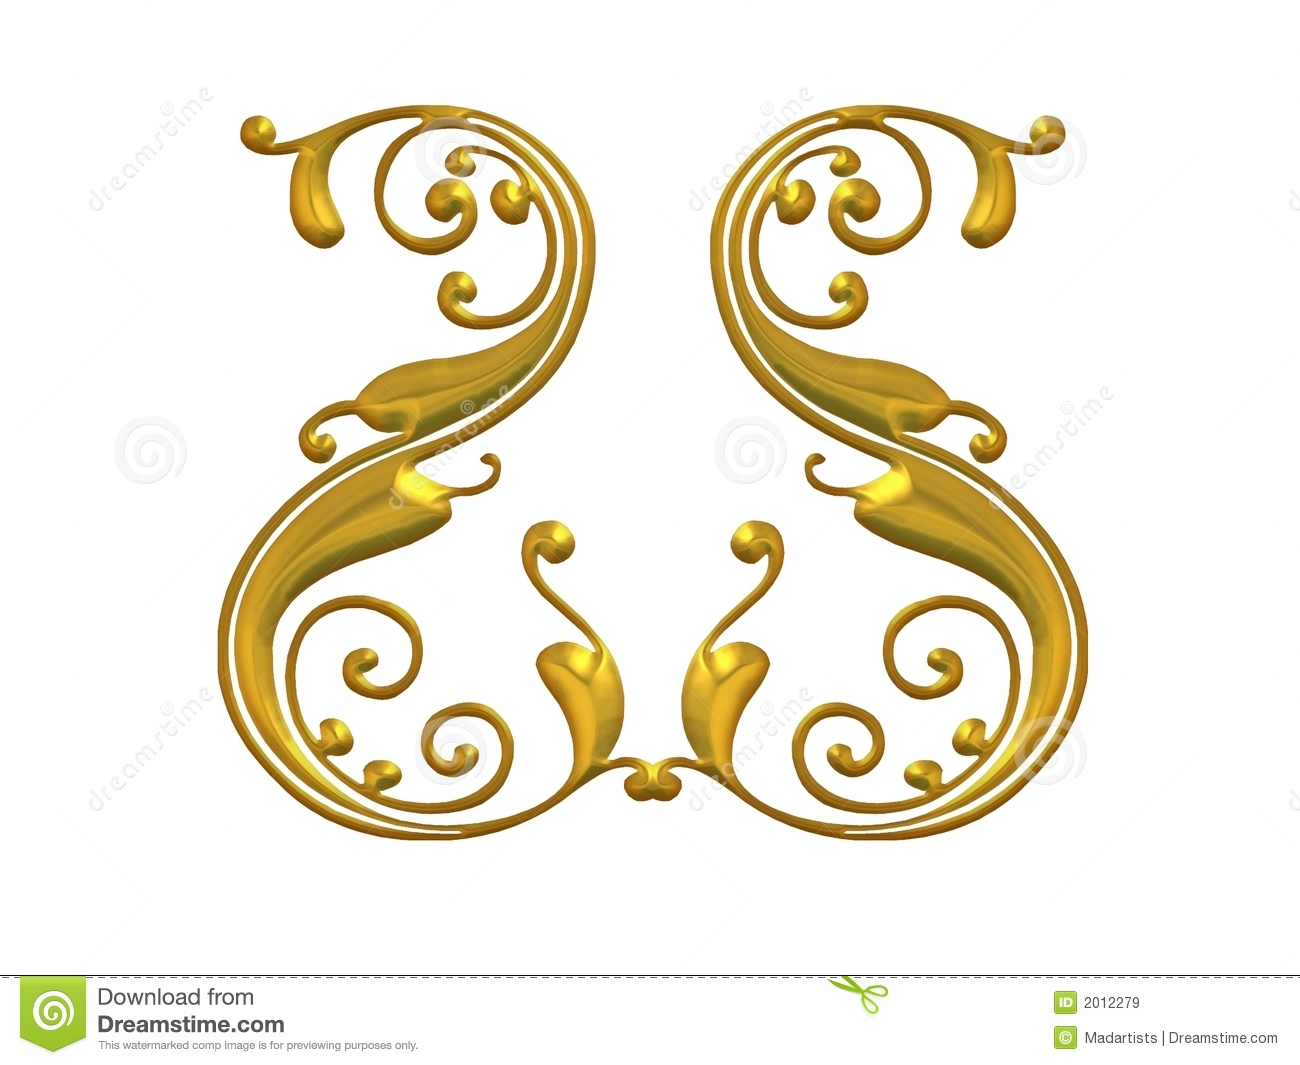 18 Gold Swirl Vector Graphics Images - Free Gold Vector ...